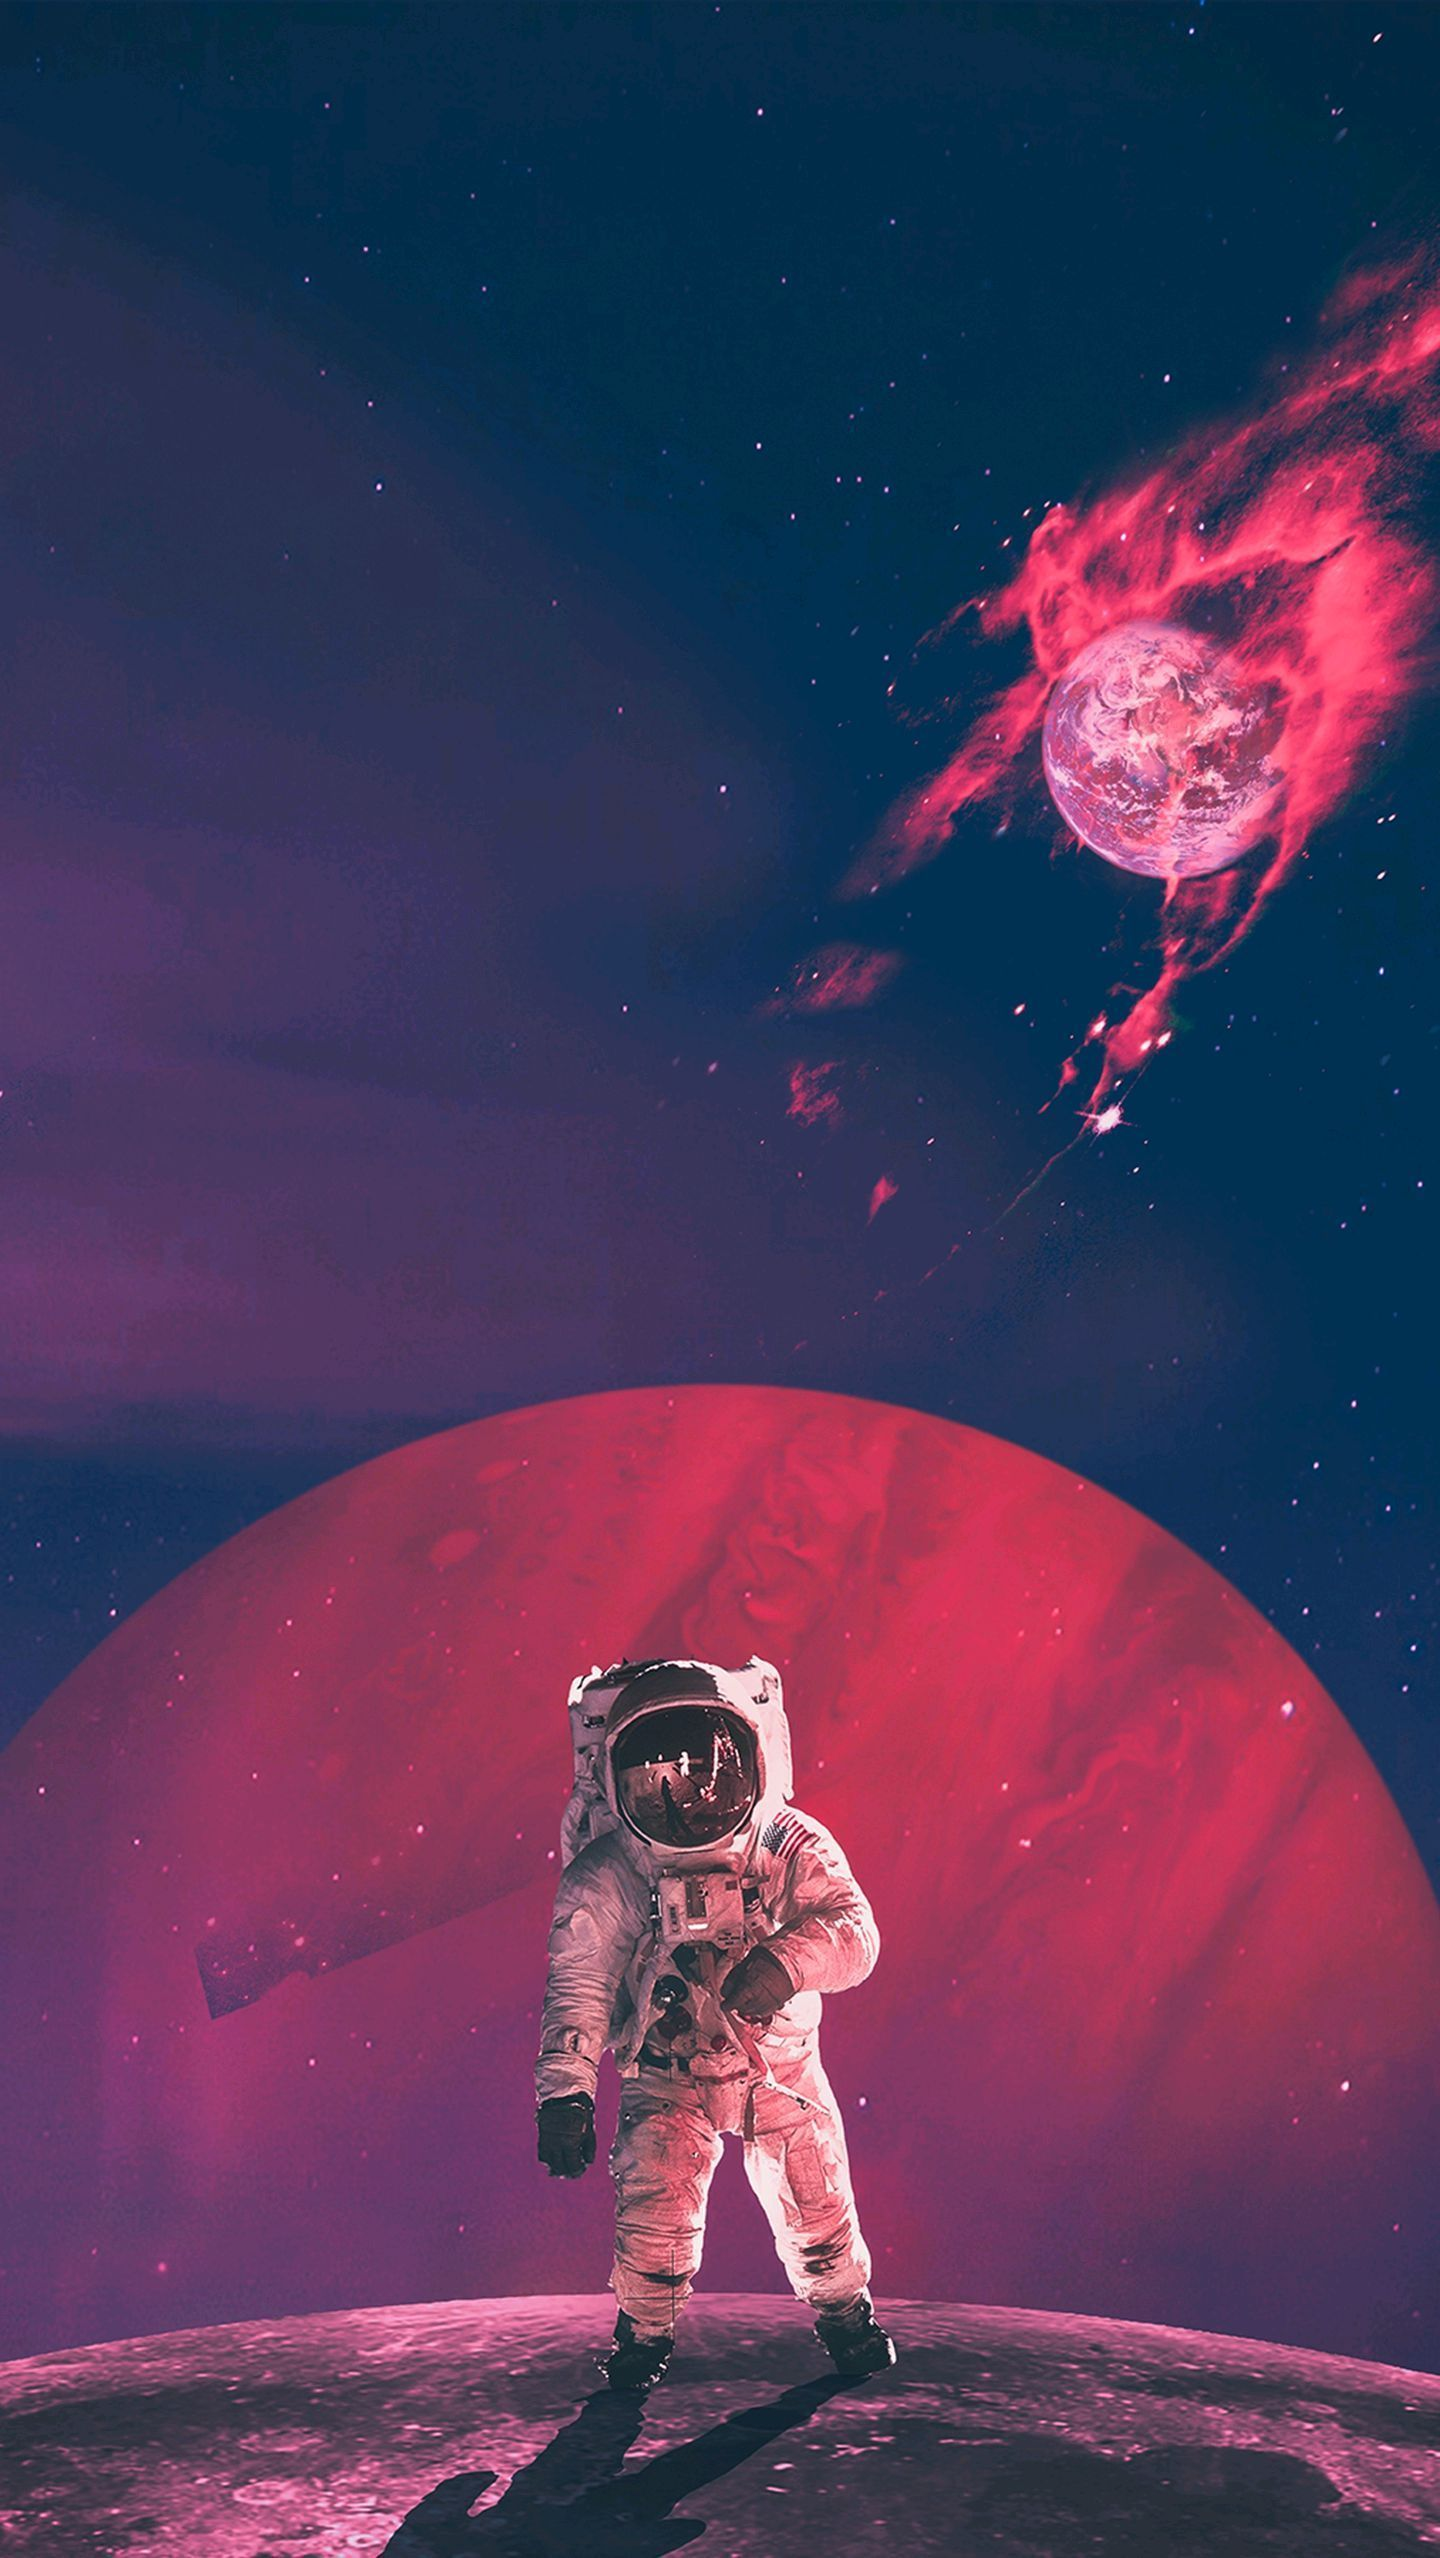 100% free to use high quality images customize and personalise your device with these free wallpapers! Supreme Astronaut Wallpapers - Wallpaper Cave